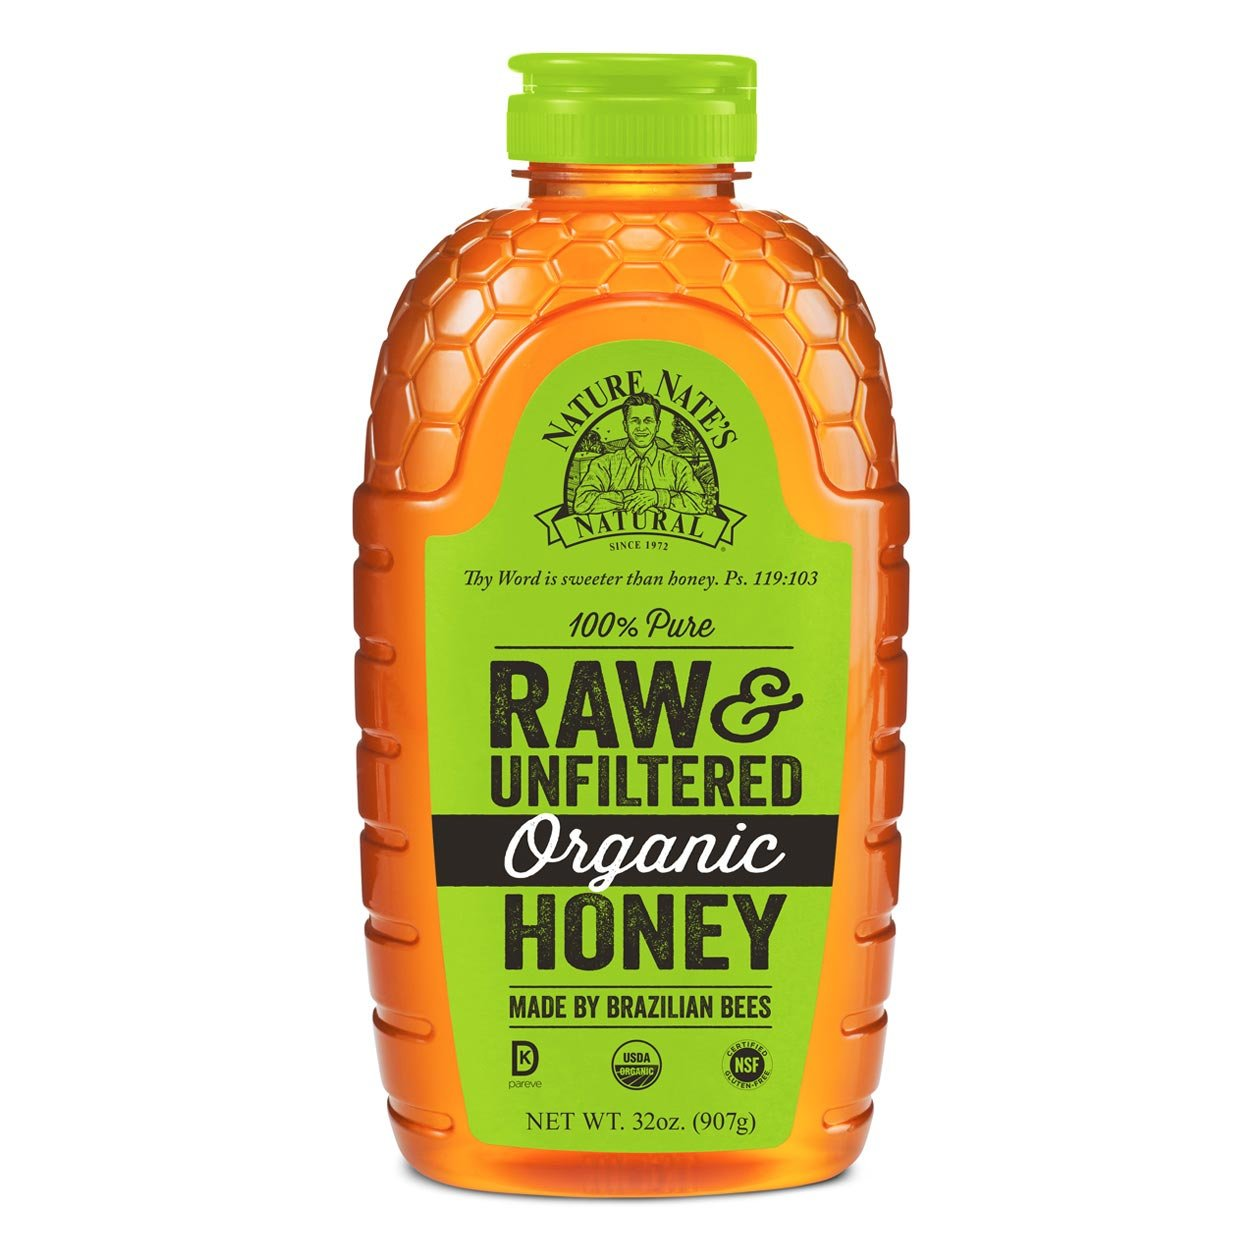 Nature Nate's 100% Pure Raw & Unfiltered Honey; Certified Gluten Free and OU Kosher Certified; Enjoy Honey's Balanced Flavors, Wholesome Benefits and Sweet Natural Goodness; 16-oz. Squeeze Bottle